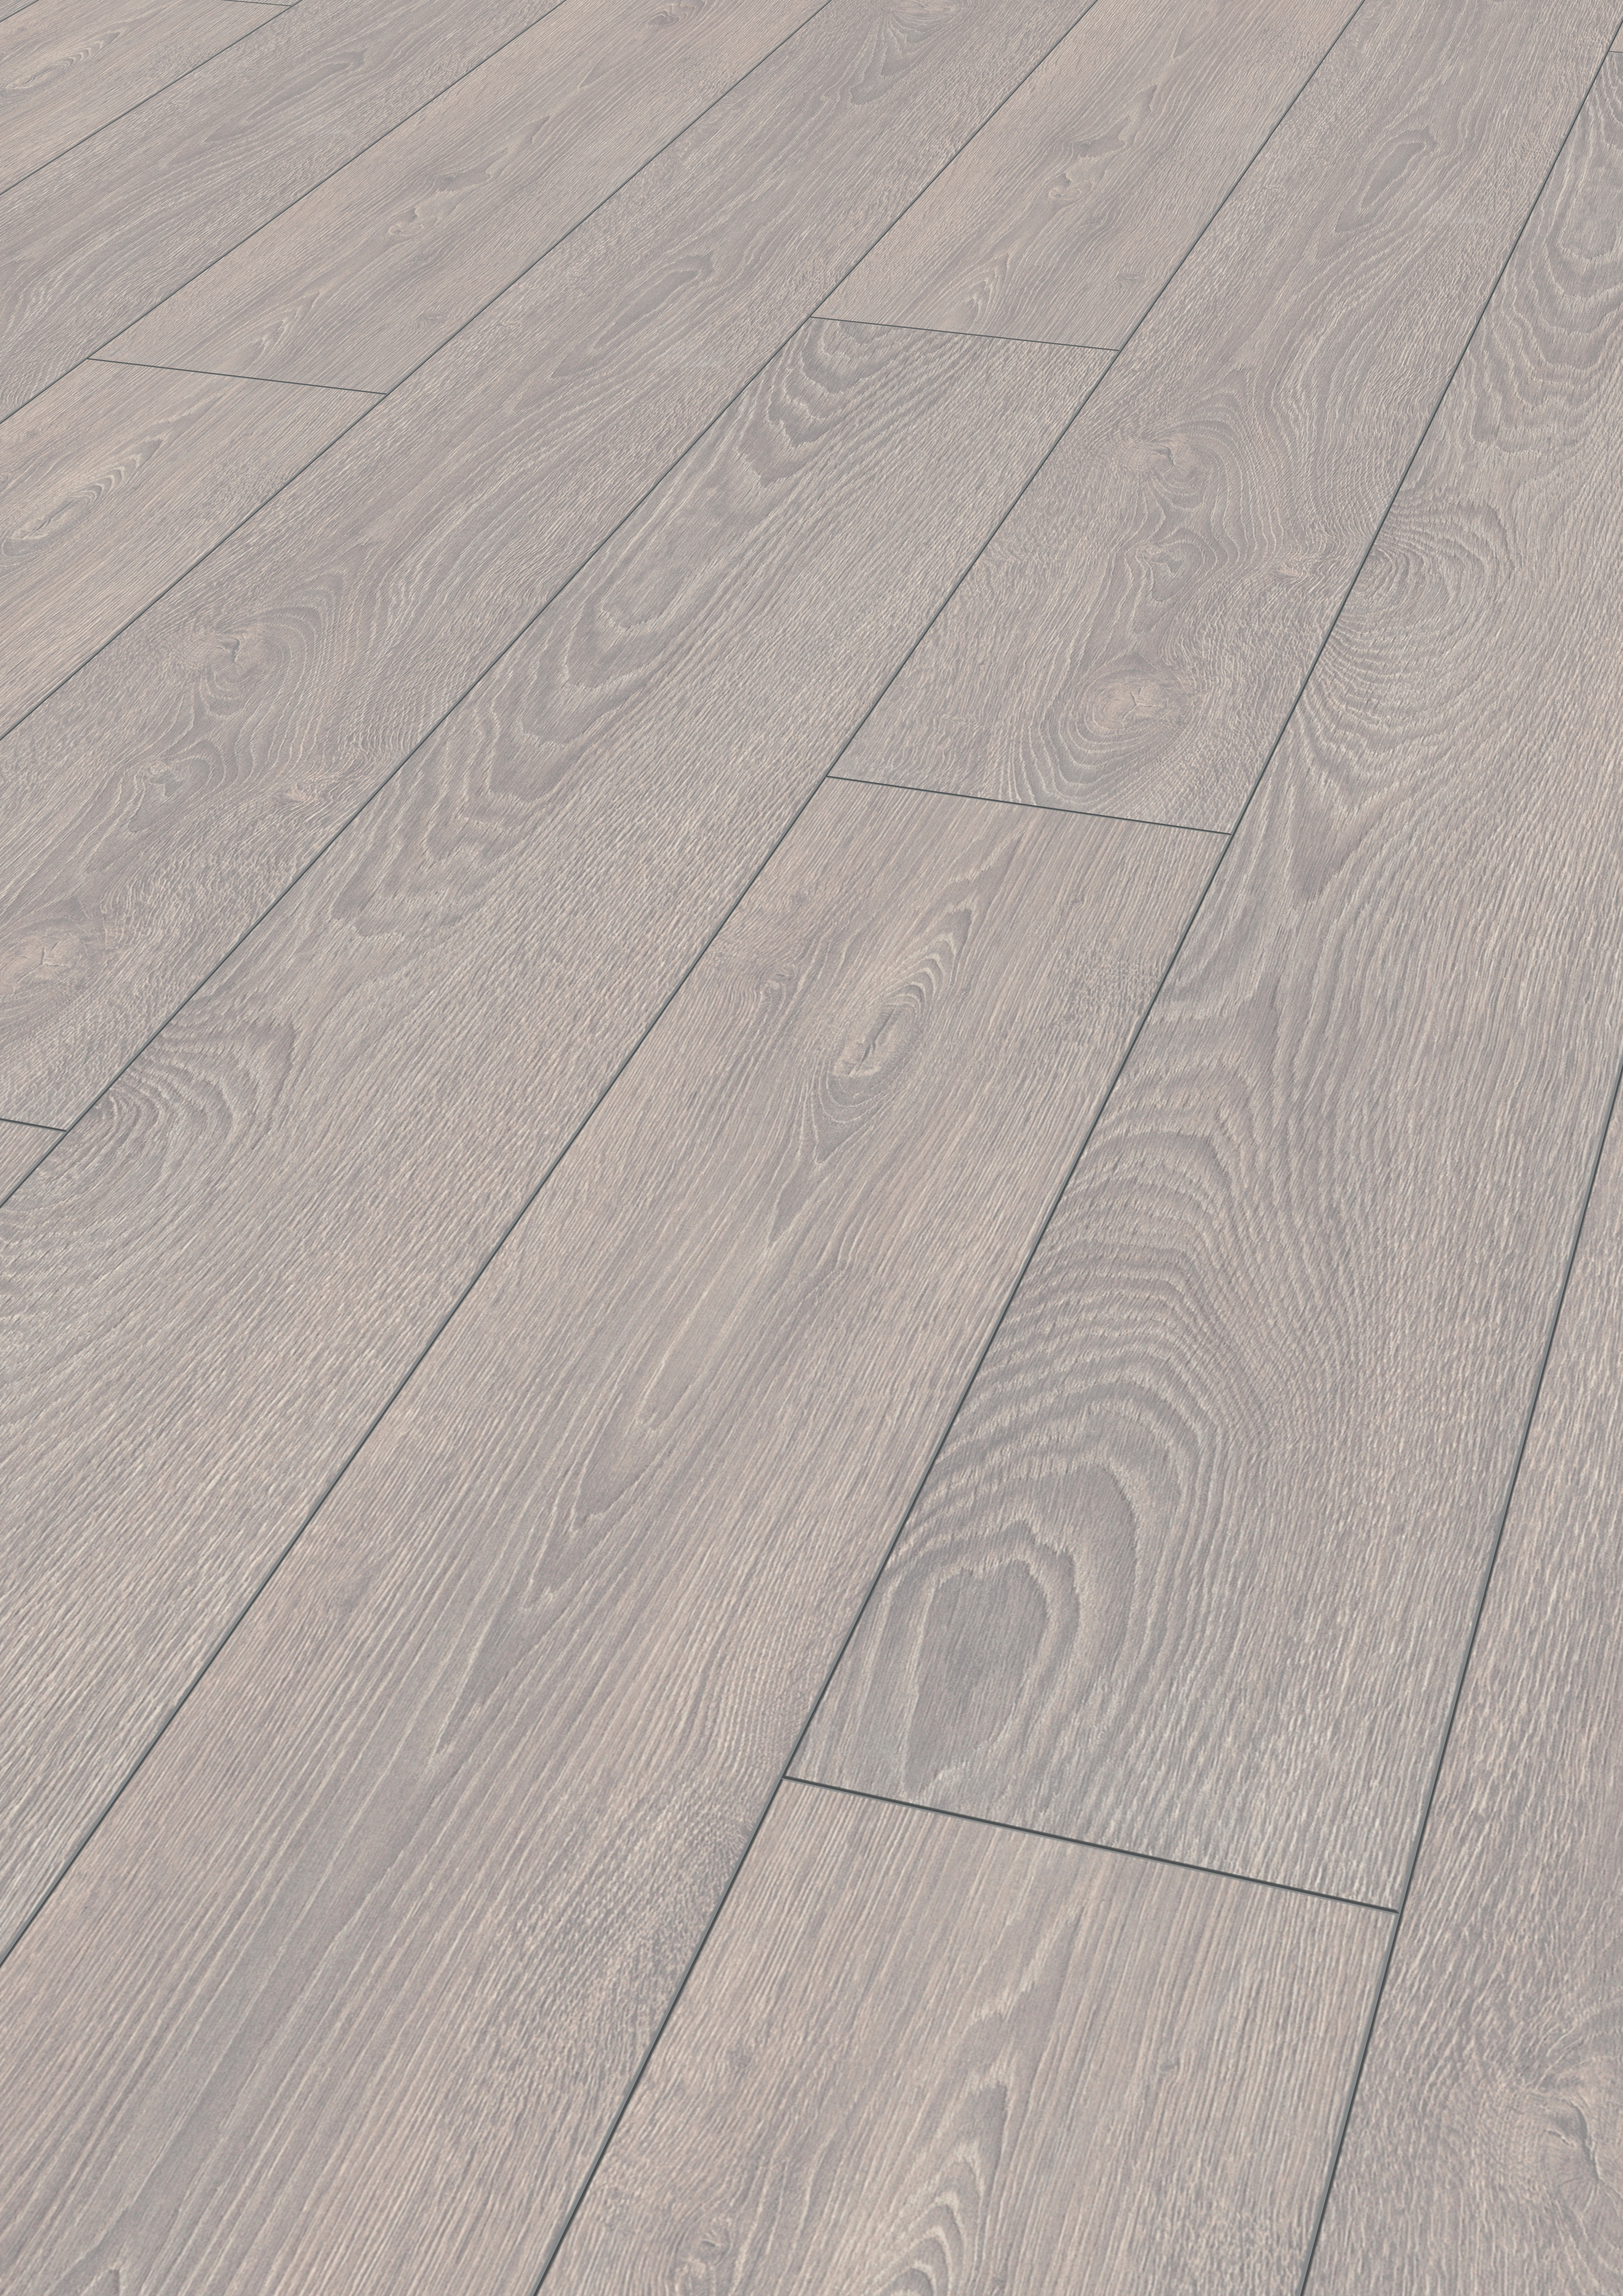 value hardwood flooring toronto of mammut laminate flooring in country house plank style kronotex in download picture